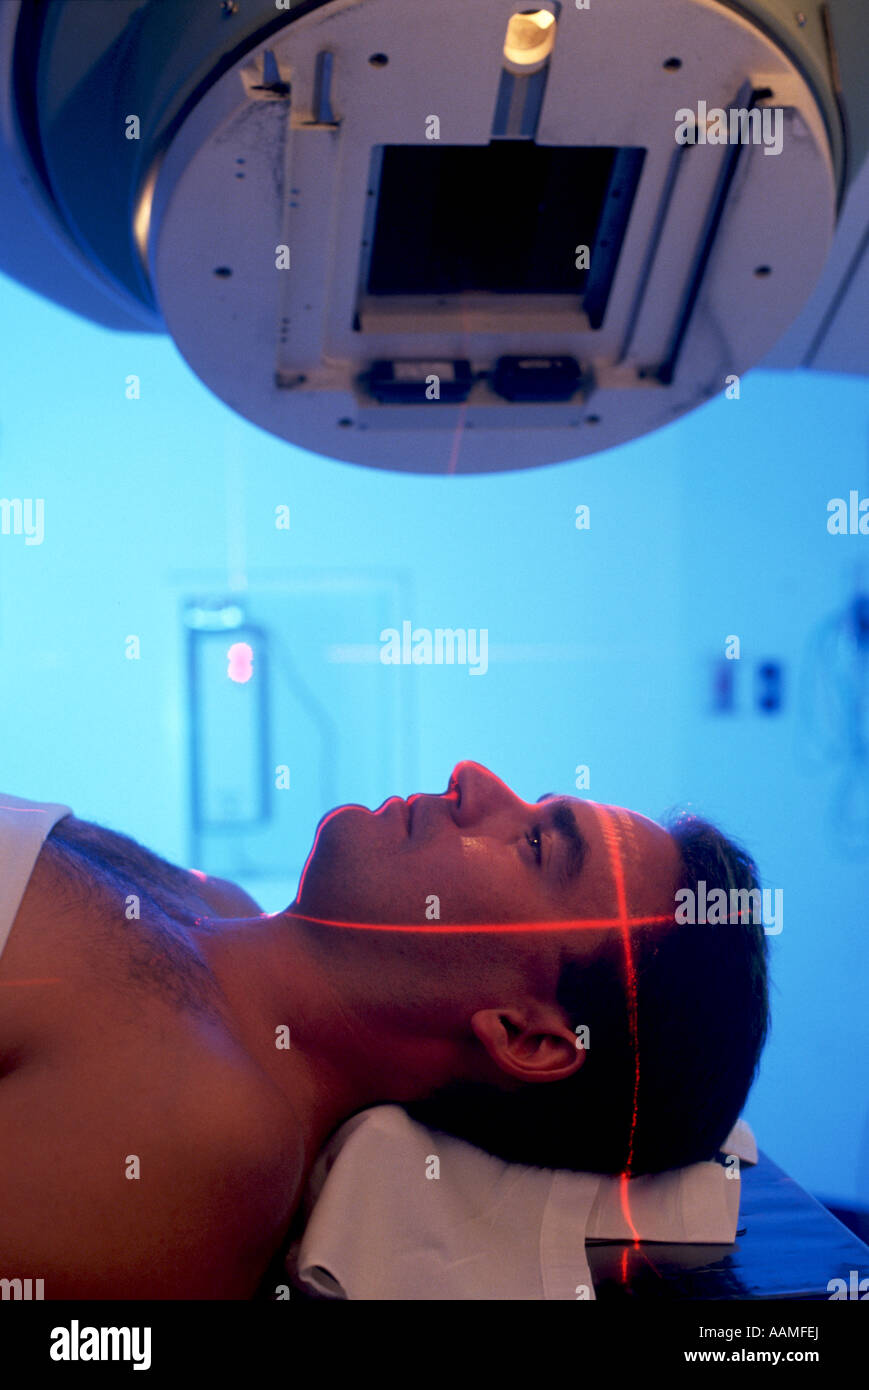 Man positioned on hospital radiation therapy machine - Stock Image